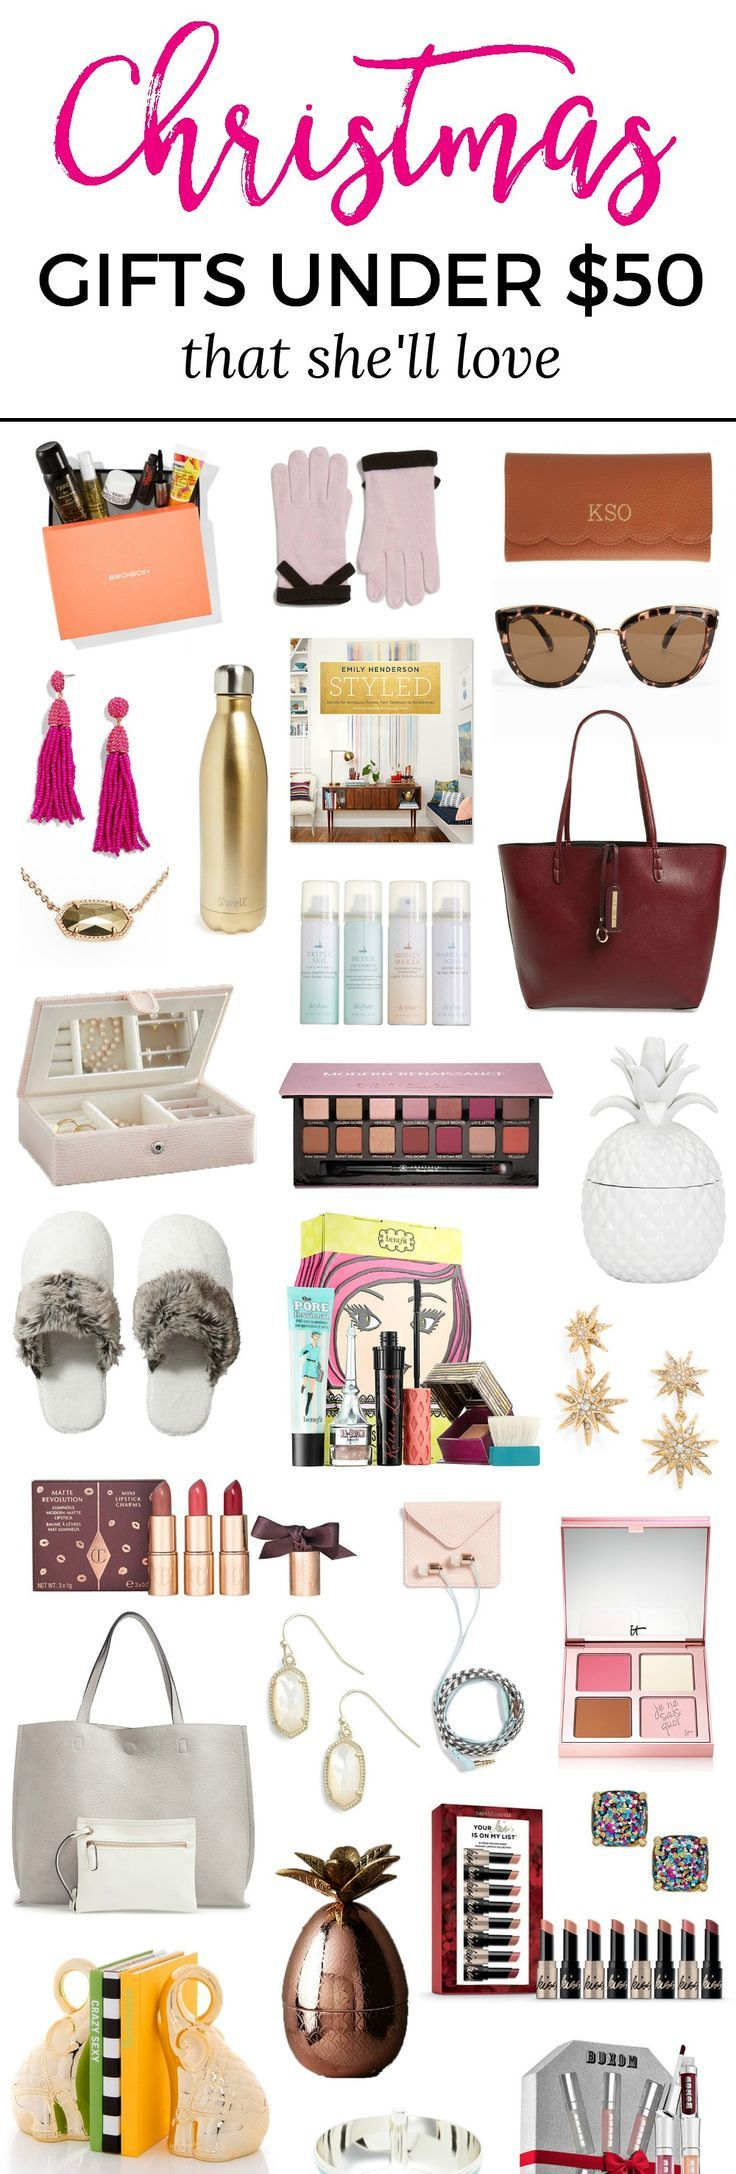 the best christmas gift ideas for women under 50 you wont want to miss this adorable christmas gift guide for women created by florida beauty and fashion - Best Christmas Gifts Under 50